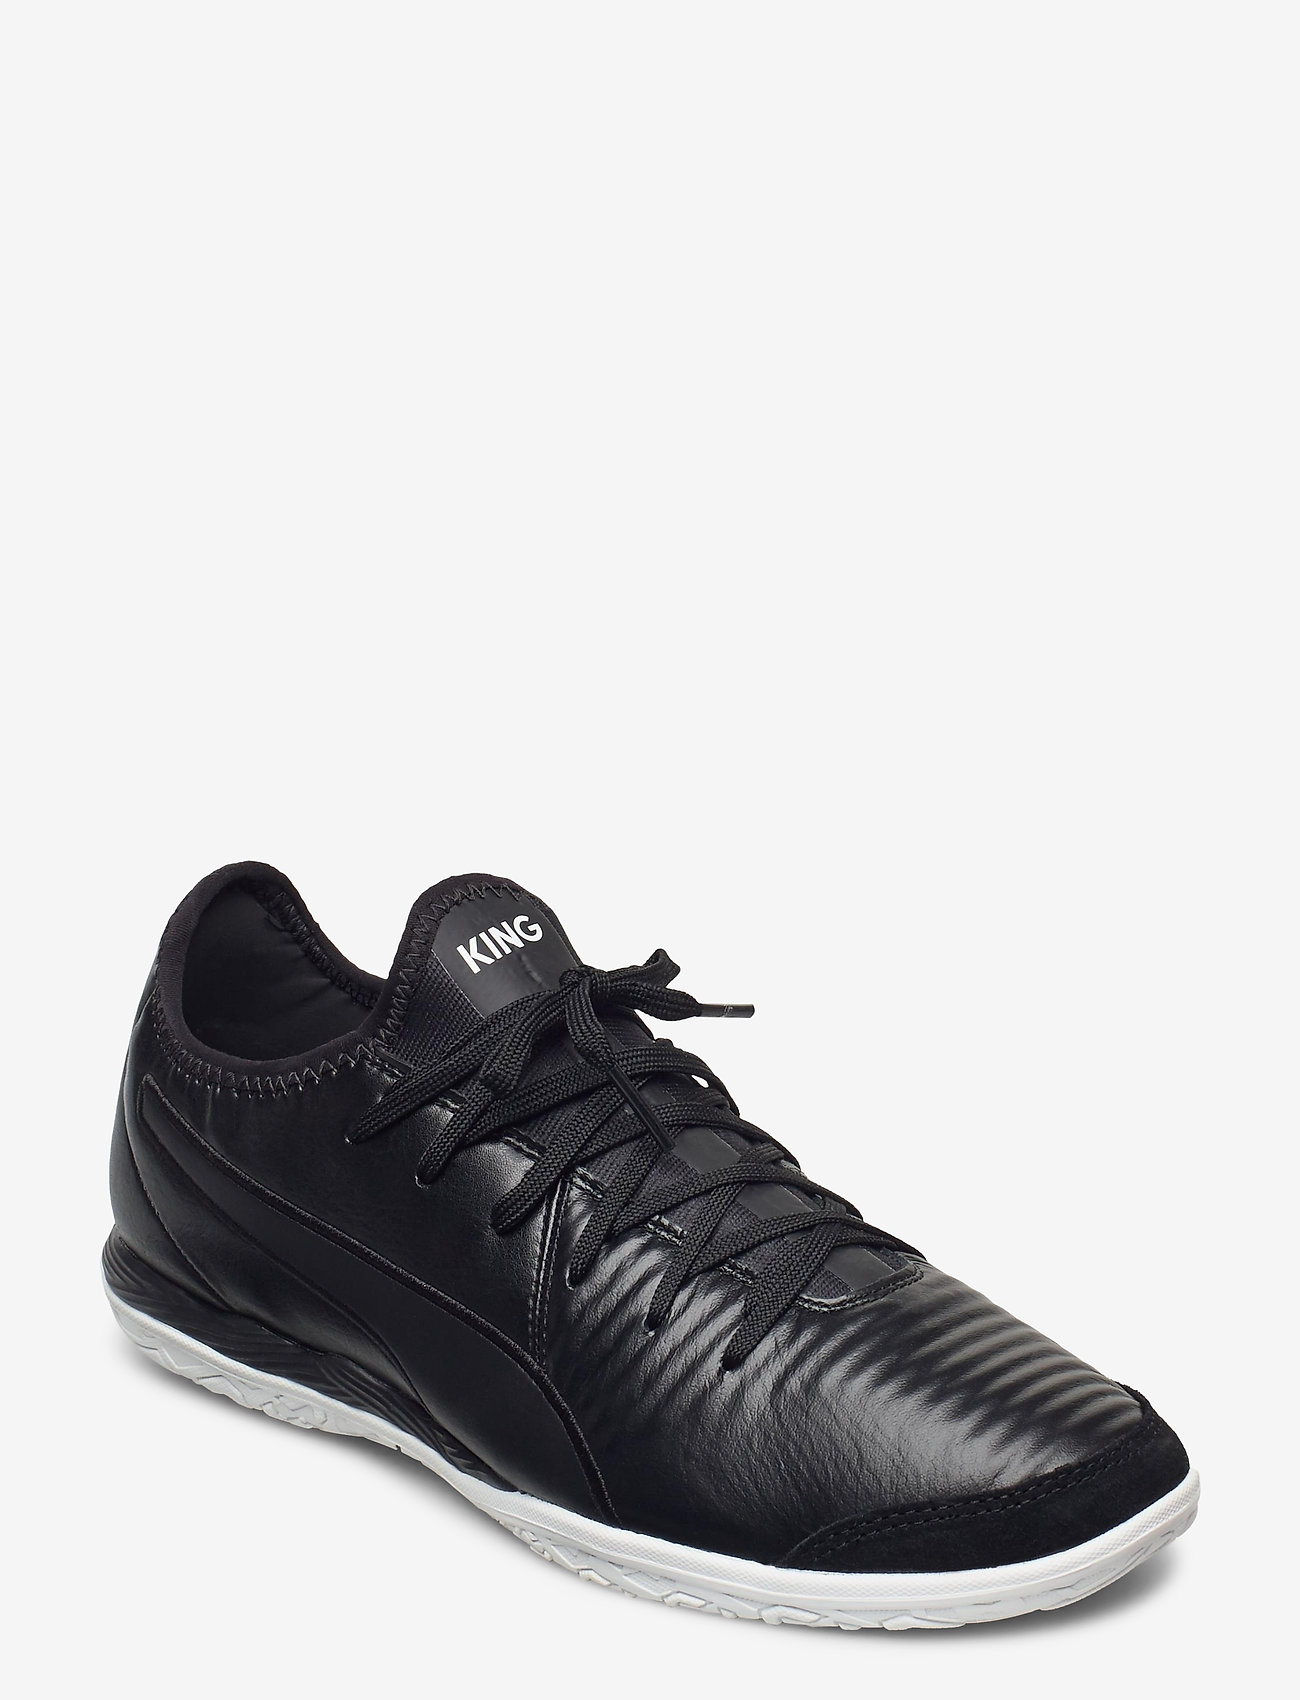 PUMA - KING Pro IT - fotbollsskor - puma black-puma white - 0